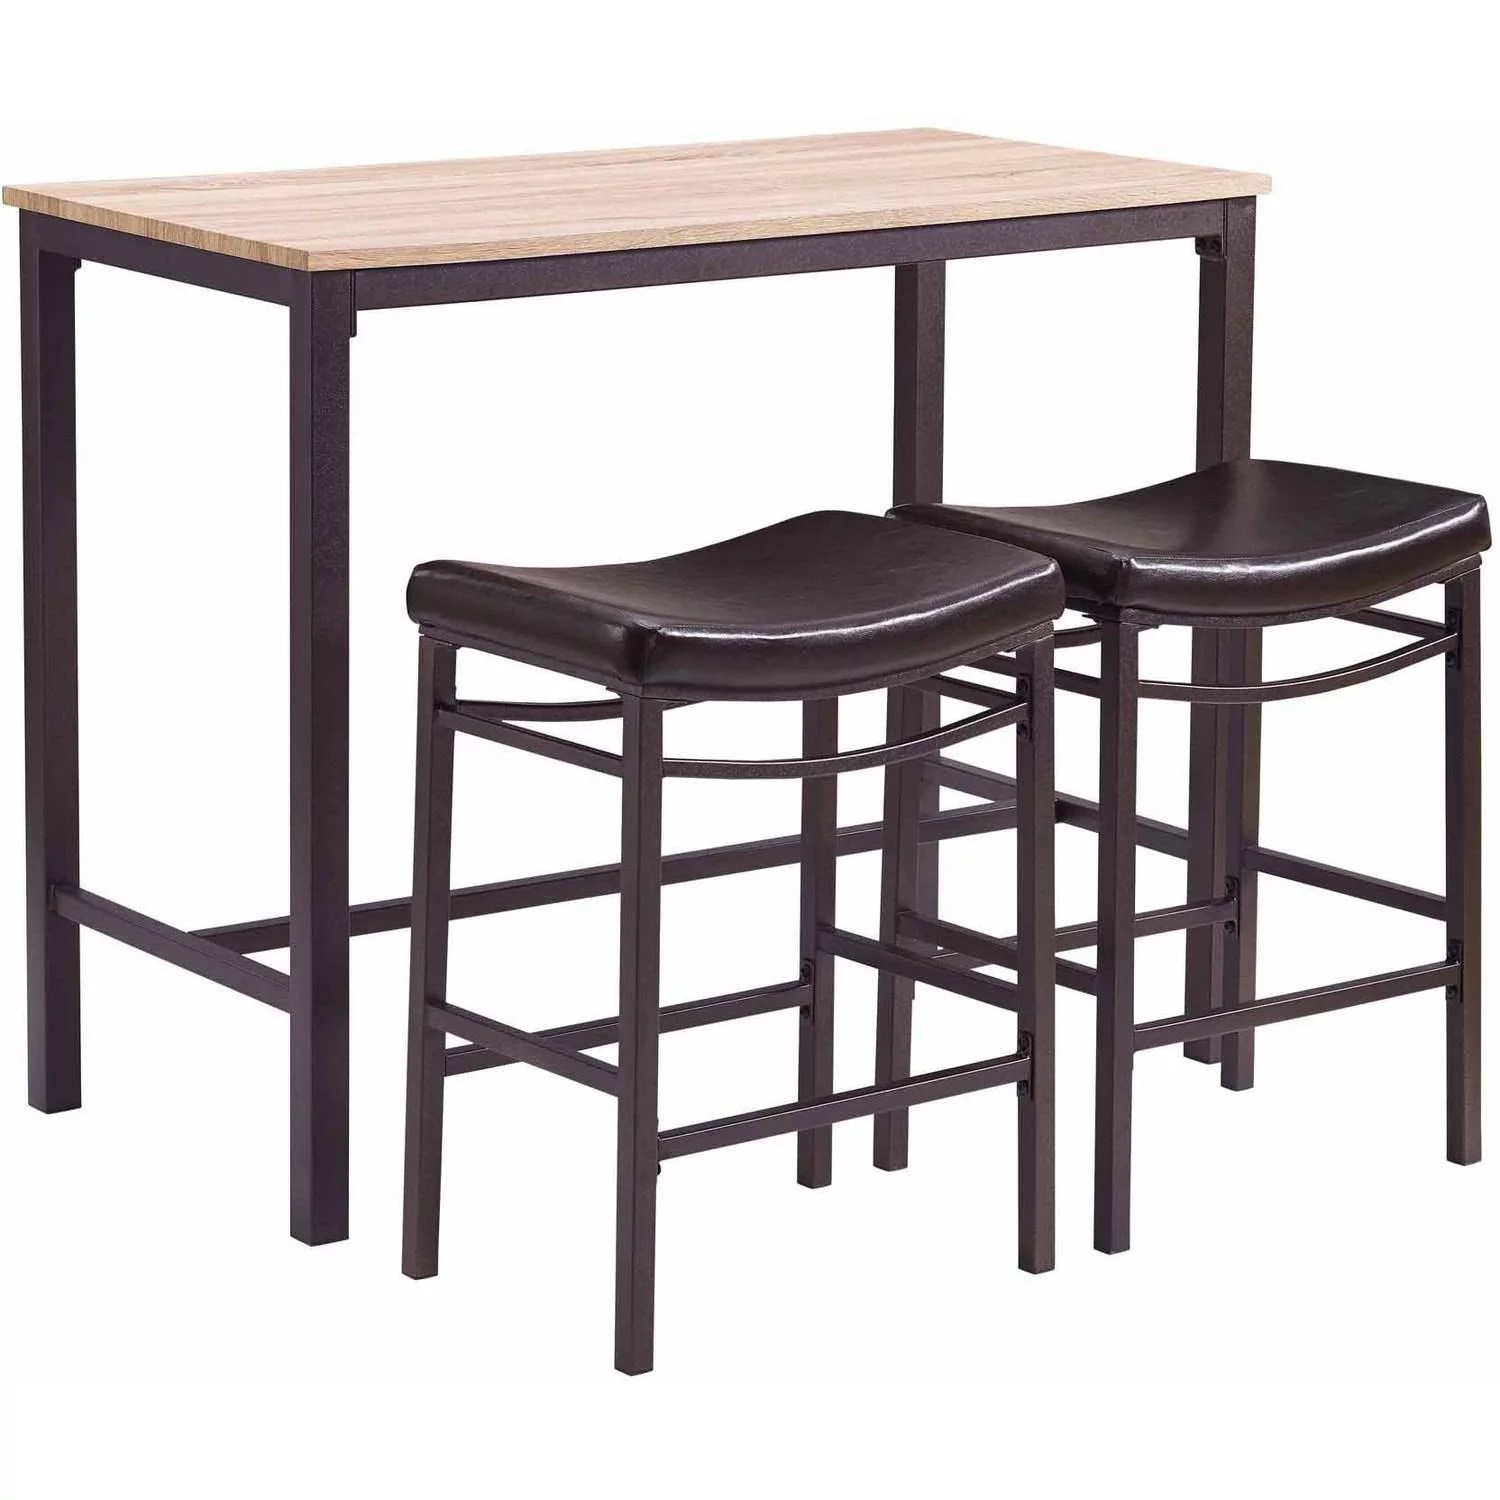 Linon Betty 3 Piece Casual Dining Tavern Set 25 59